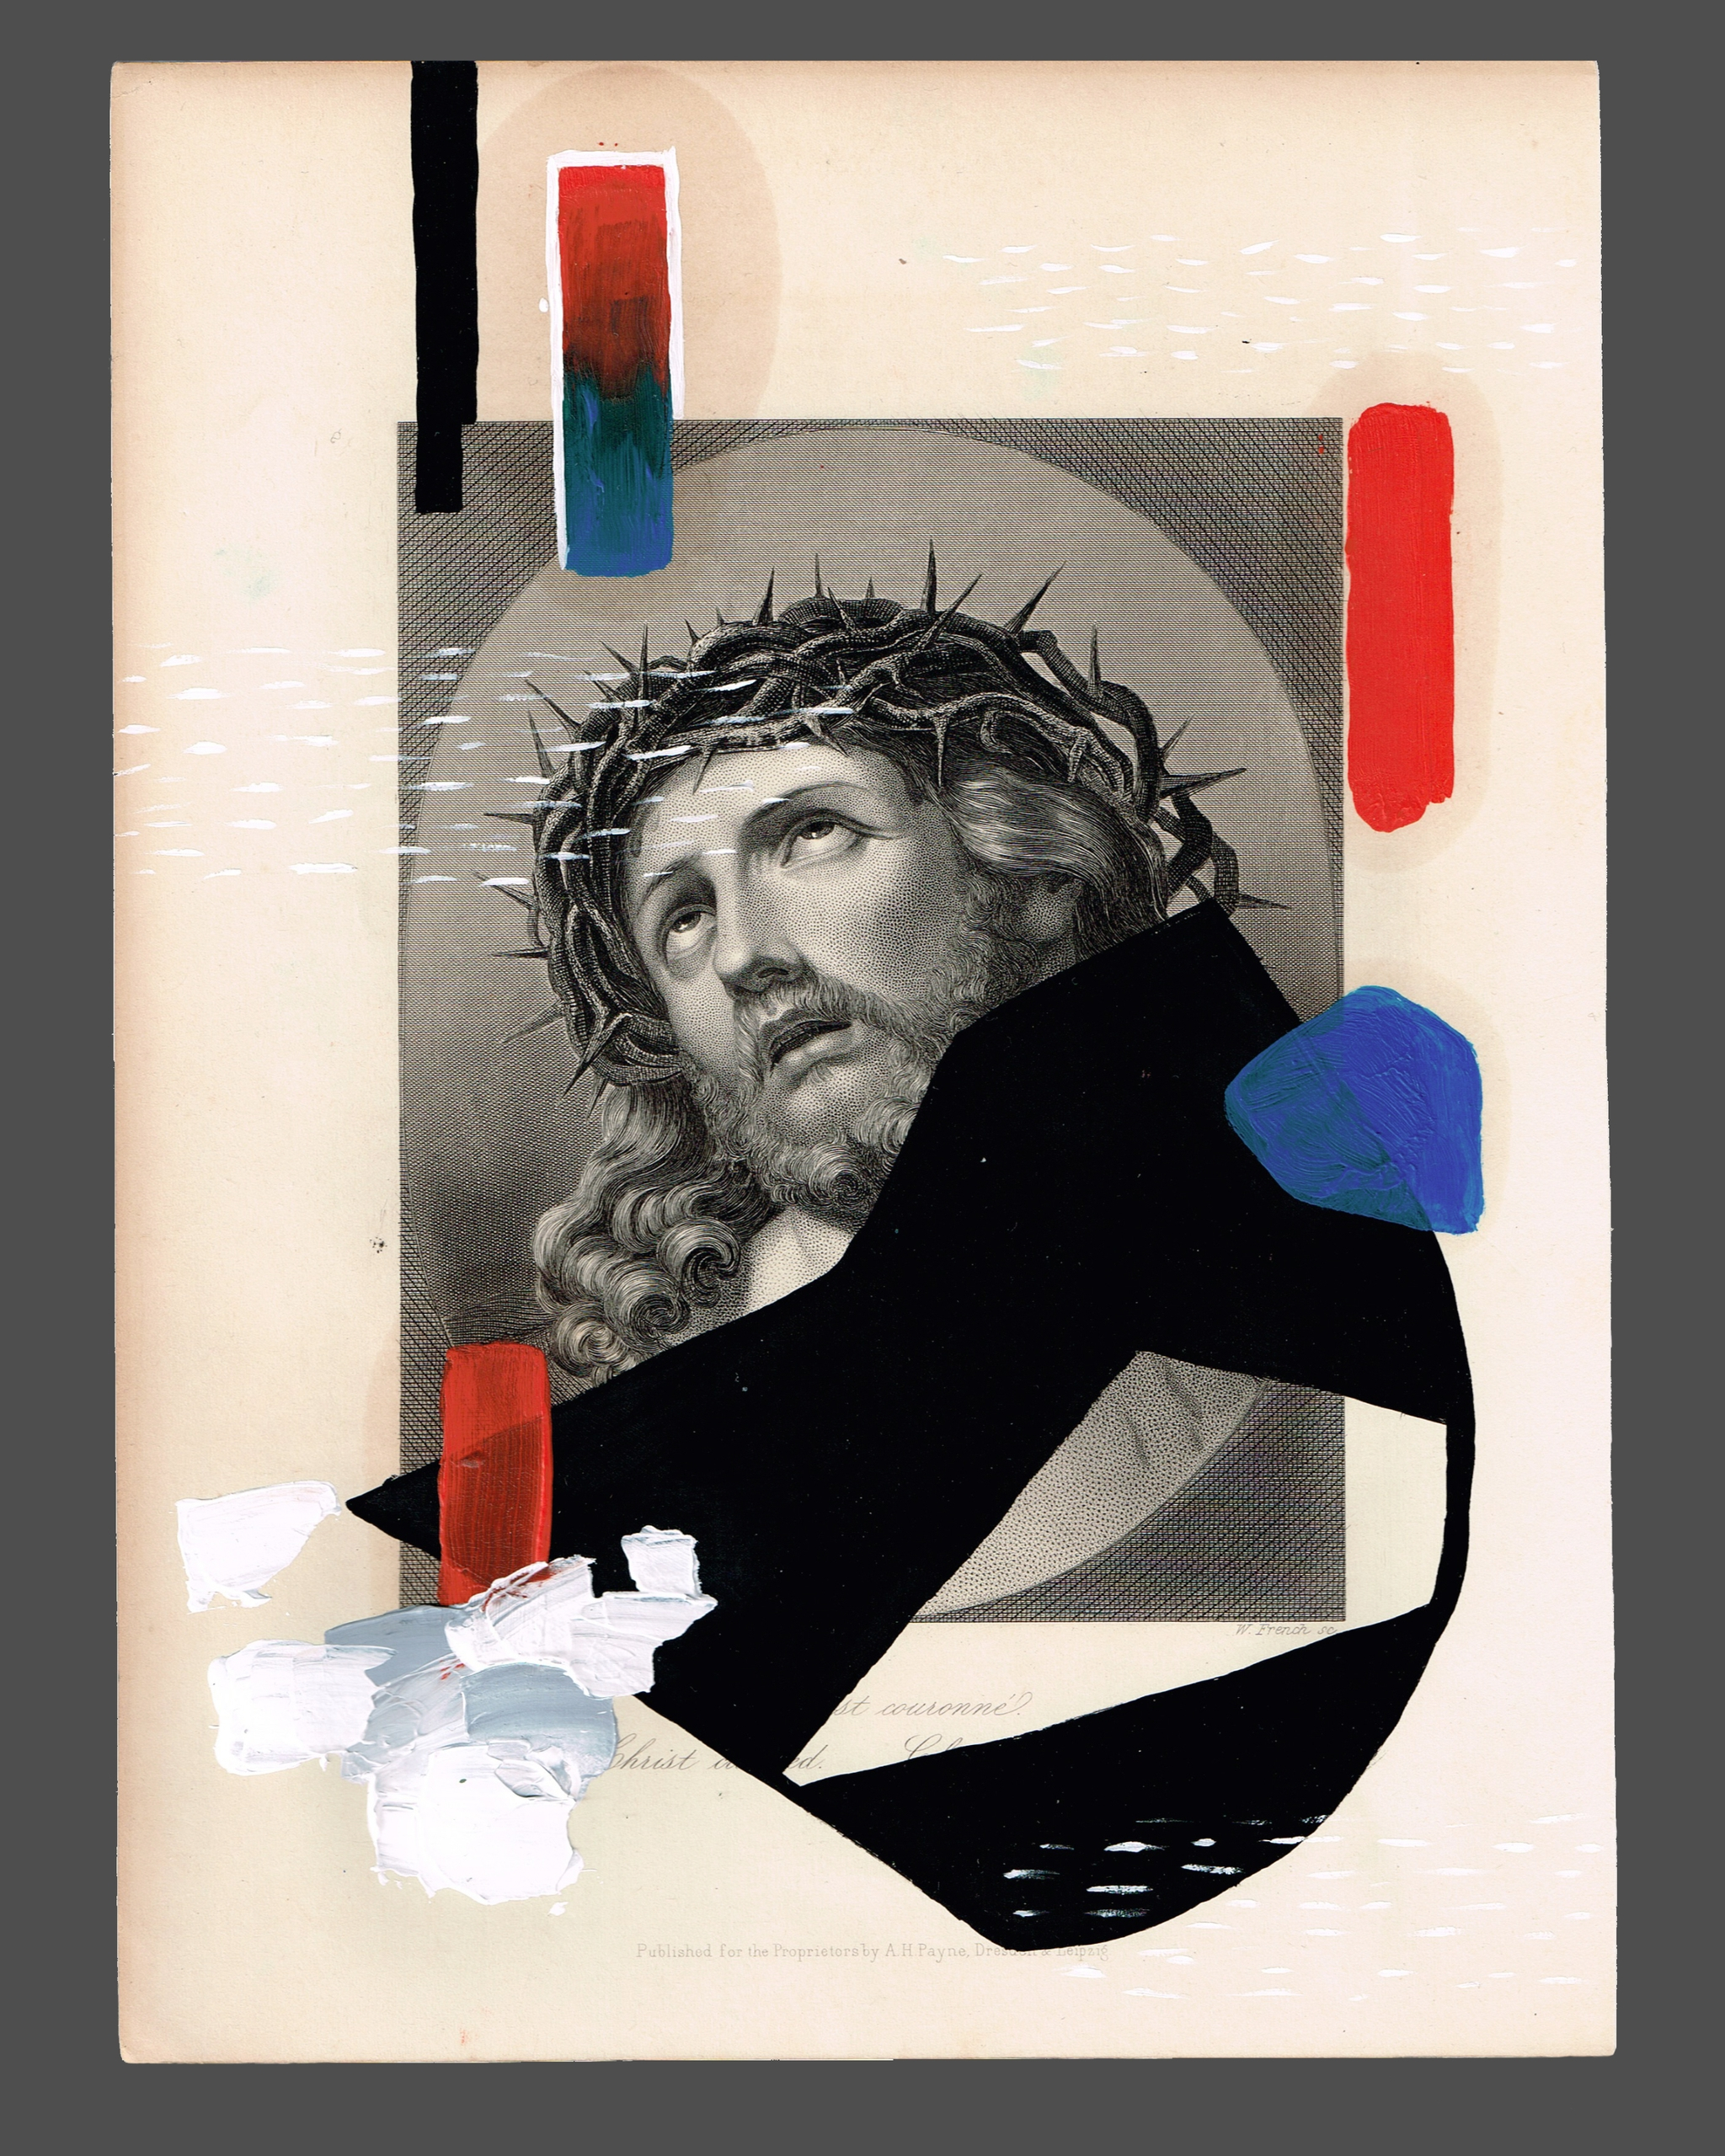 bit messy - jesus, christ, oil, acrylic - missingsock | ello